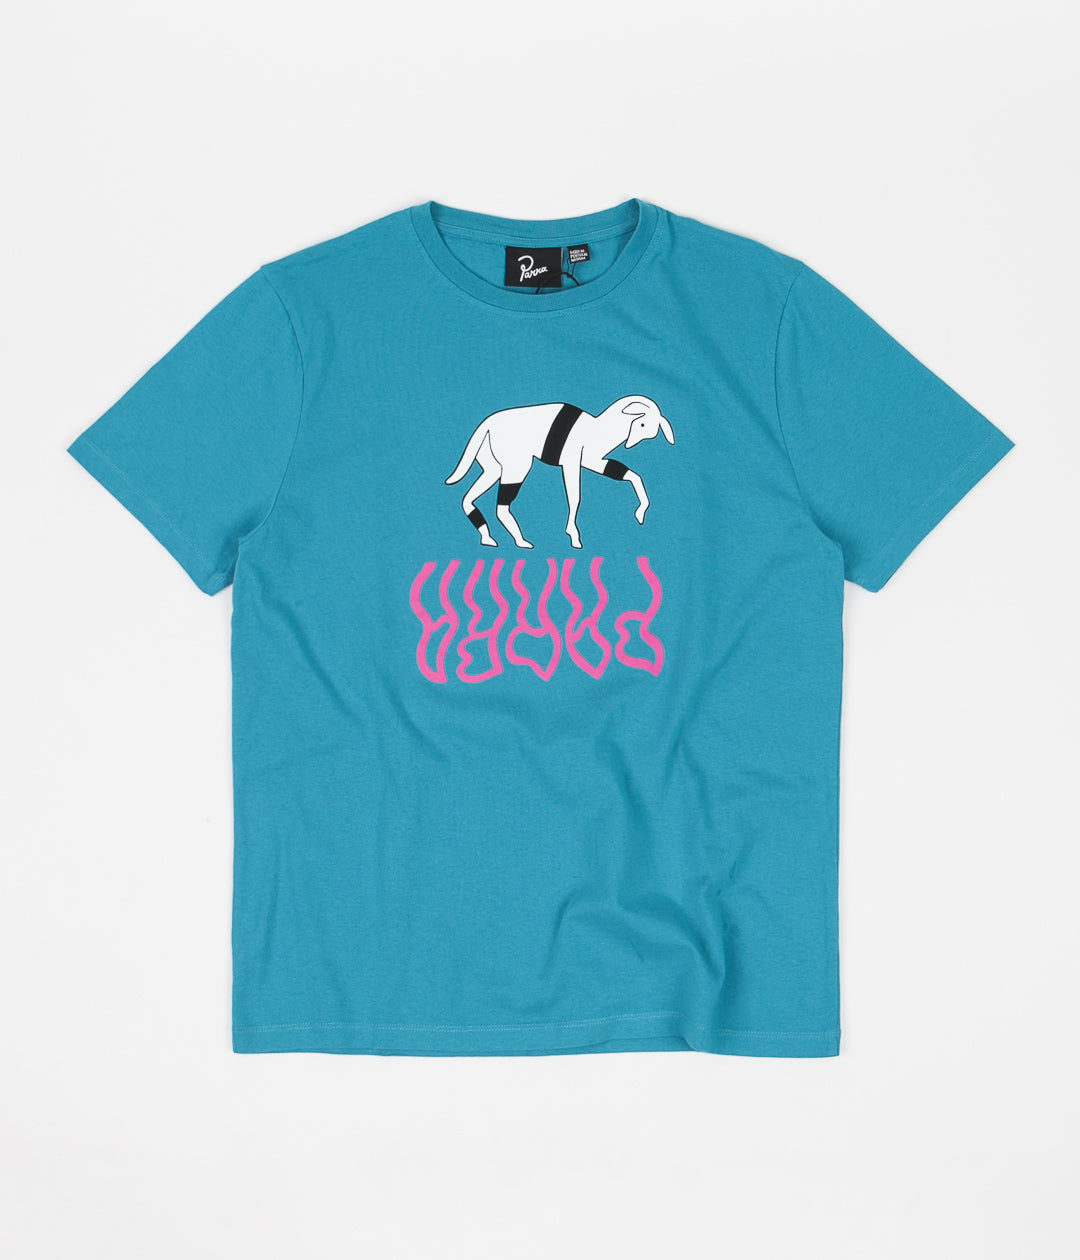 by Parra The Goat Reflection T-Shirt - Caribbean Sea